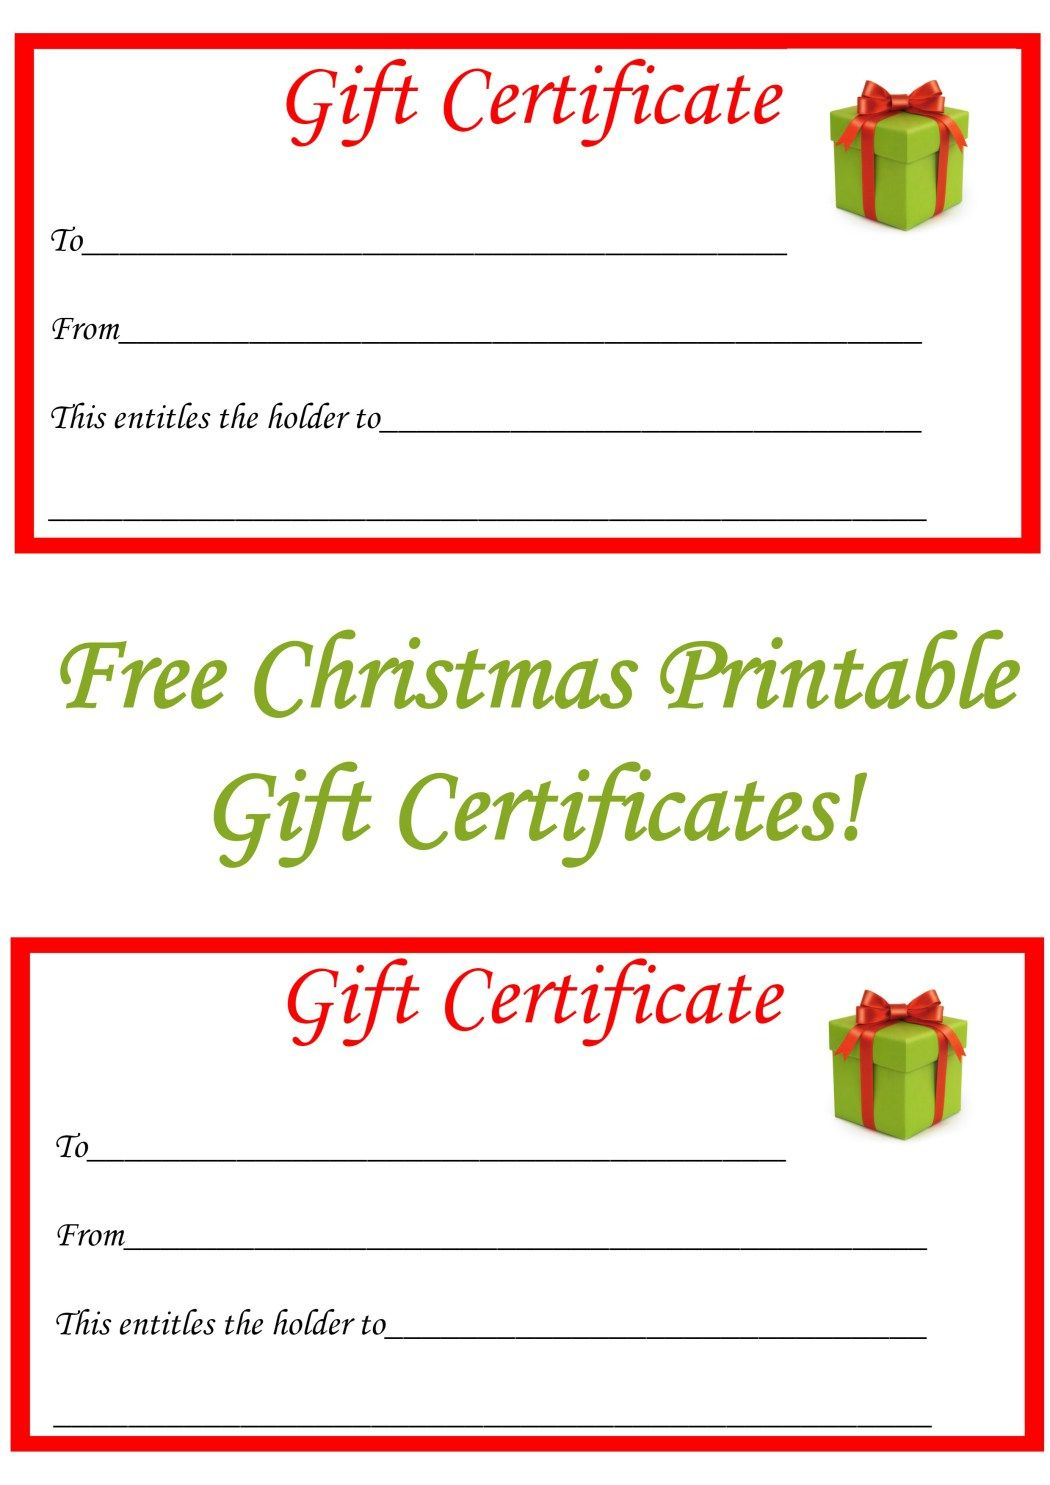 free printable gift certificate template - best 25 printable gift certificates ideas on pinterest